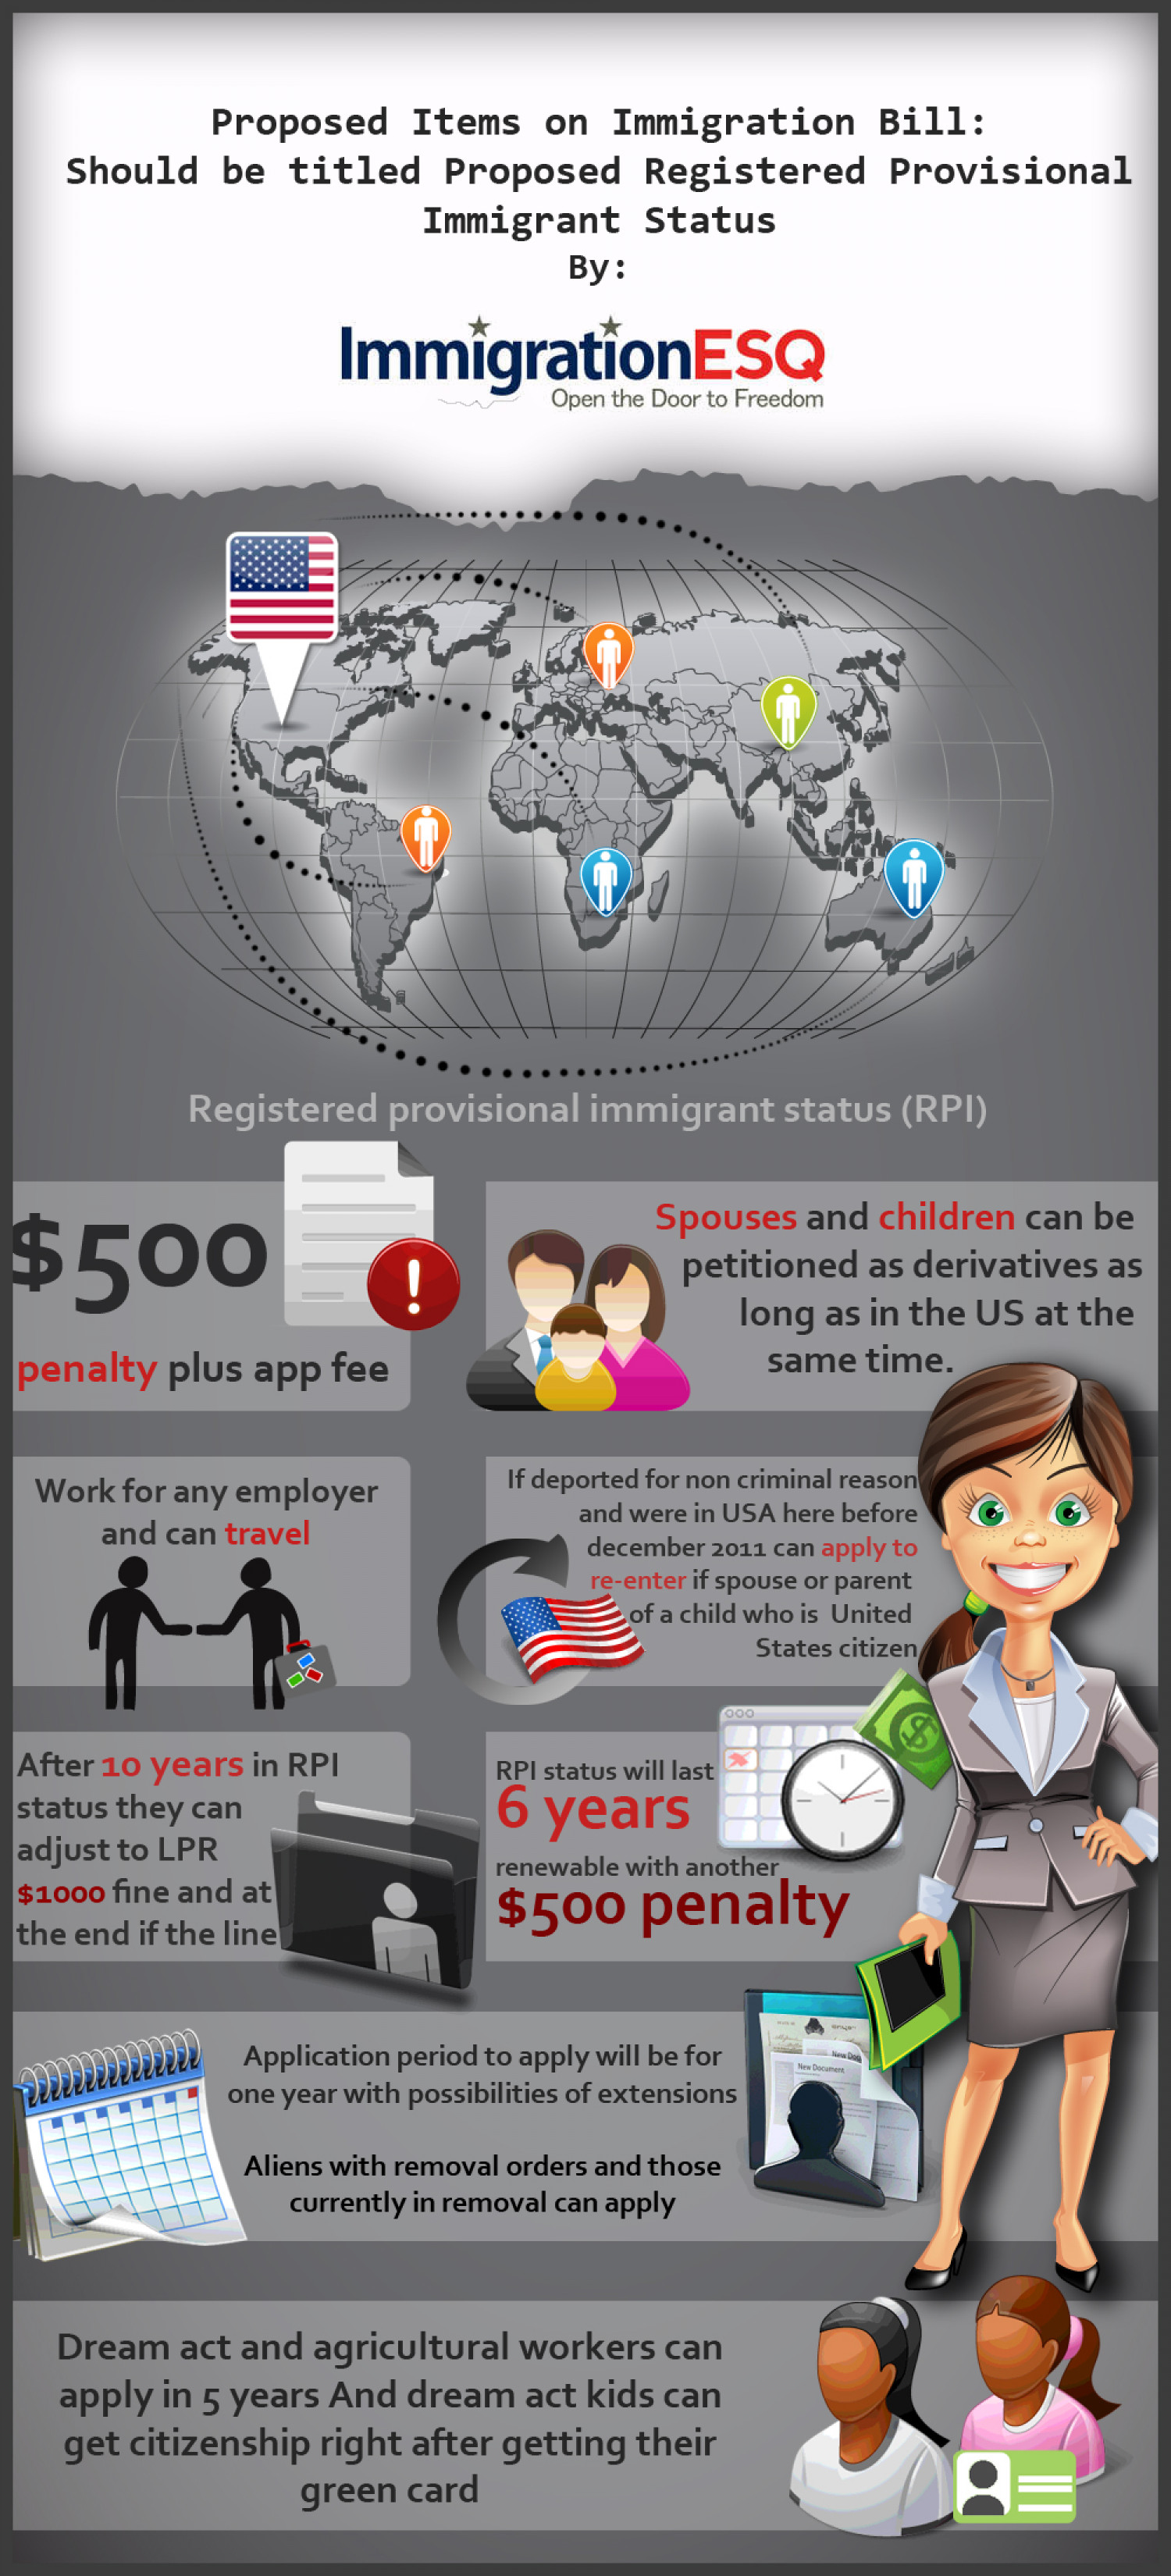 Immigration Reform Proposal Infographic